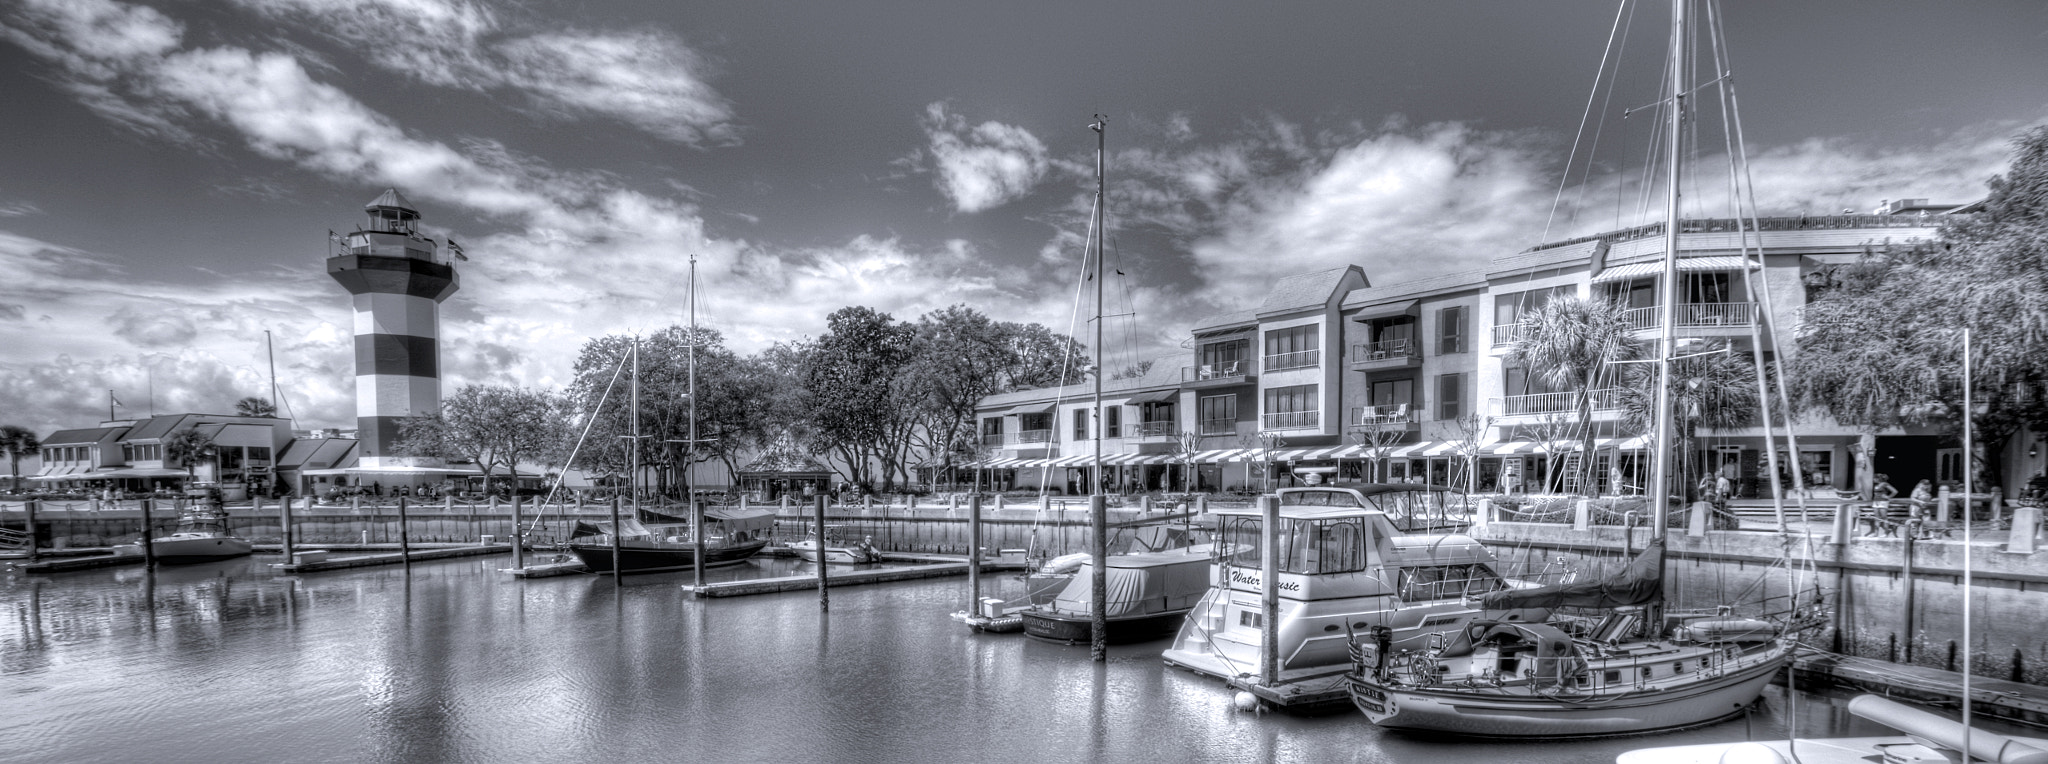 Photograph Harbour Town Pano by Brett Lance on 500px